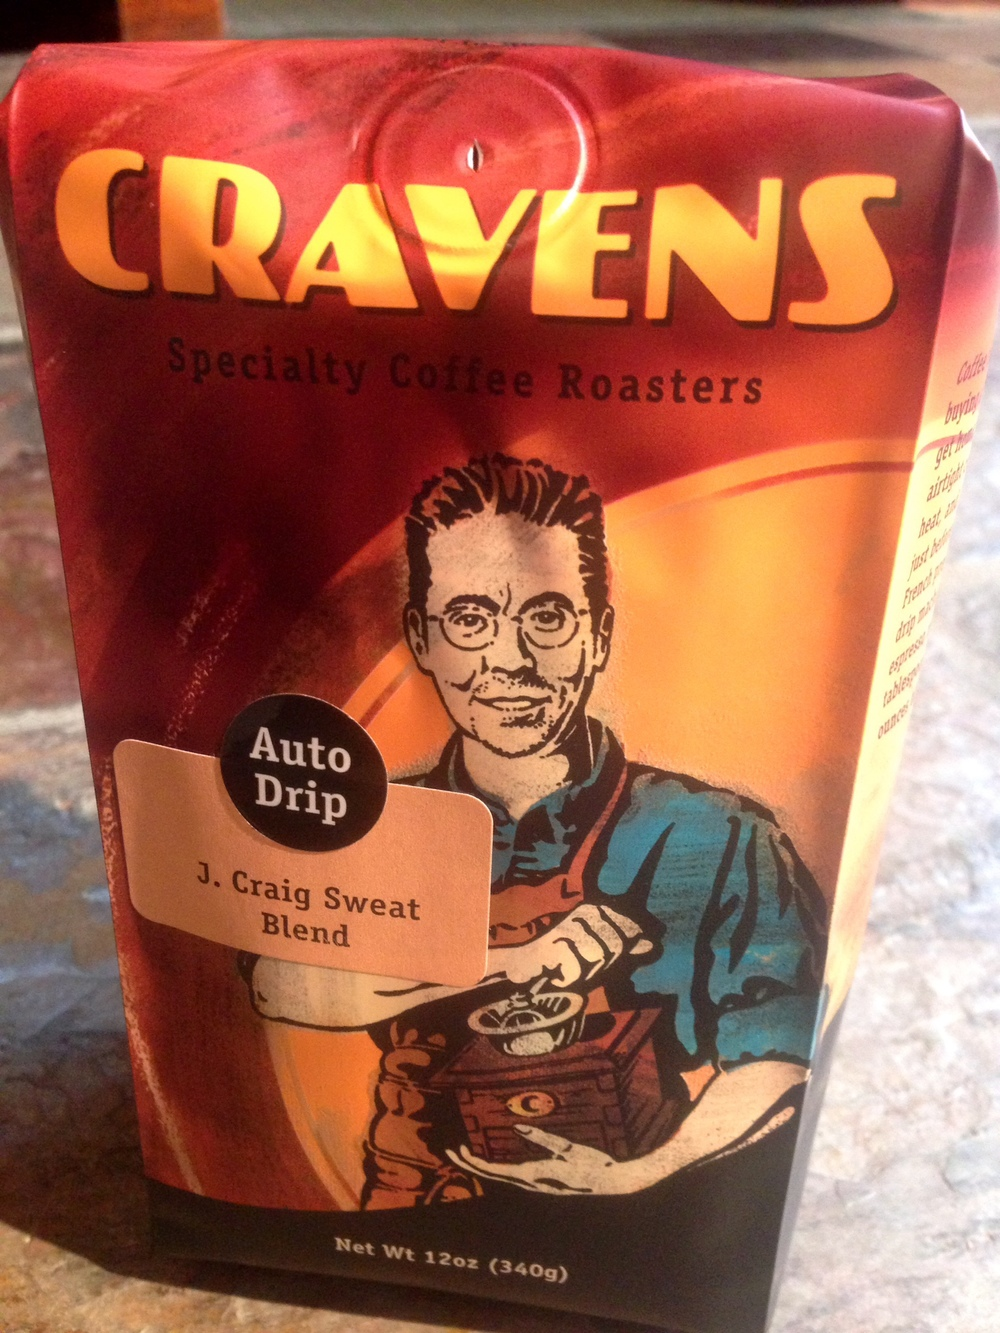 The bag above is a the J. Craig Sweat Blend. The design of the bag features an illustration of Simon Craven Thompson of the owners of Cravens coffee.